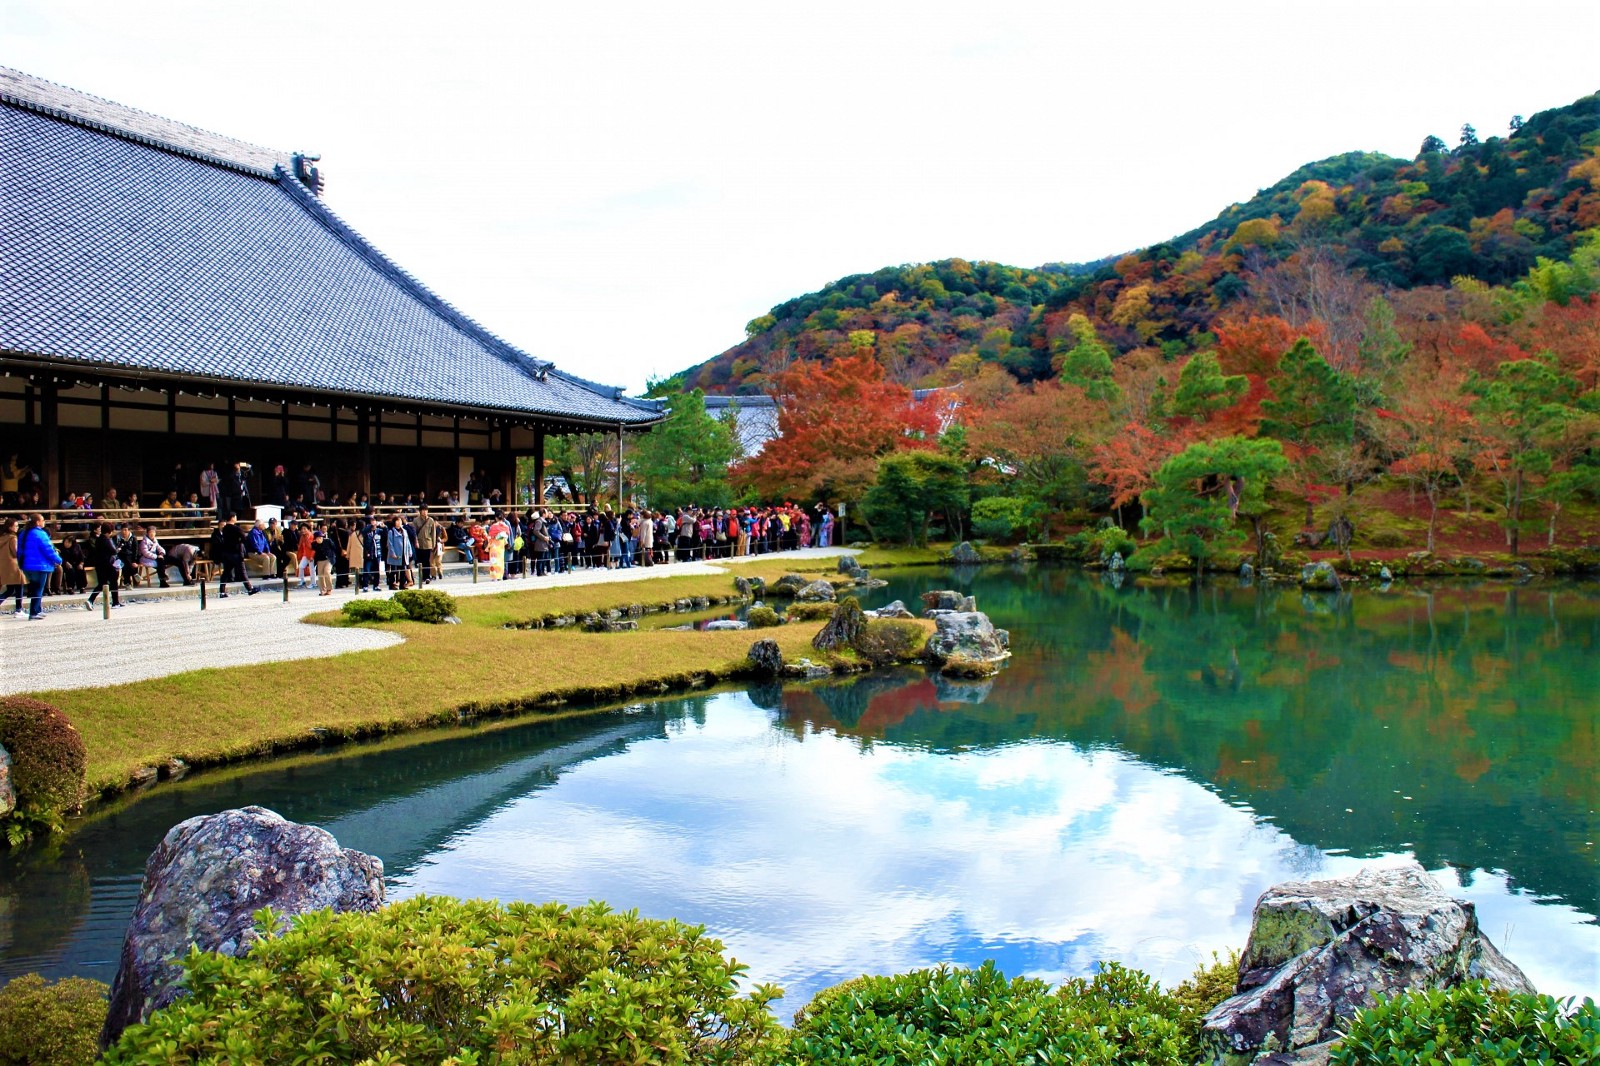 Arashiyama Tenryuji Temple: Kyoto's Yet Another UNESCO World Heritage Site